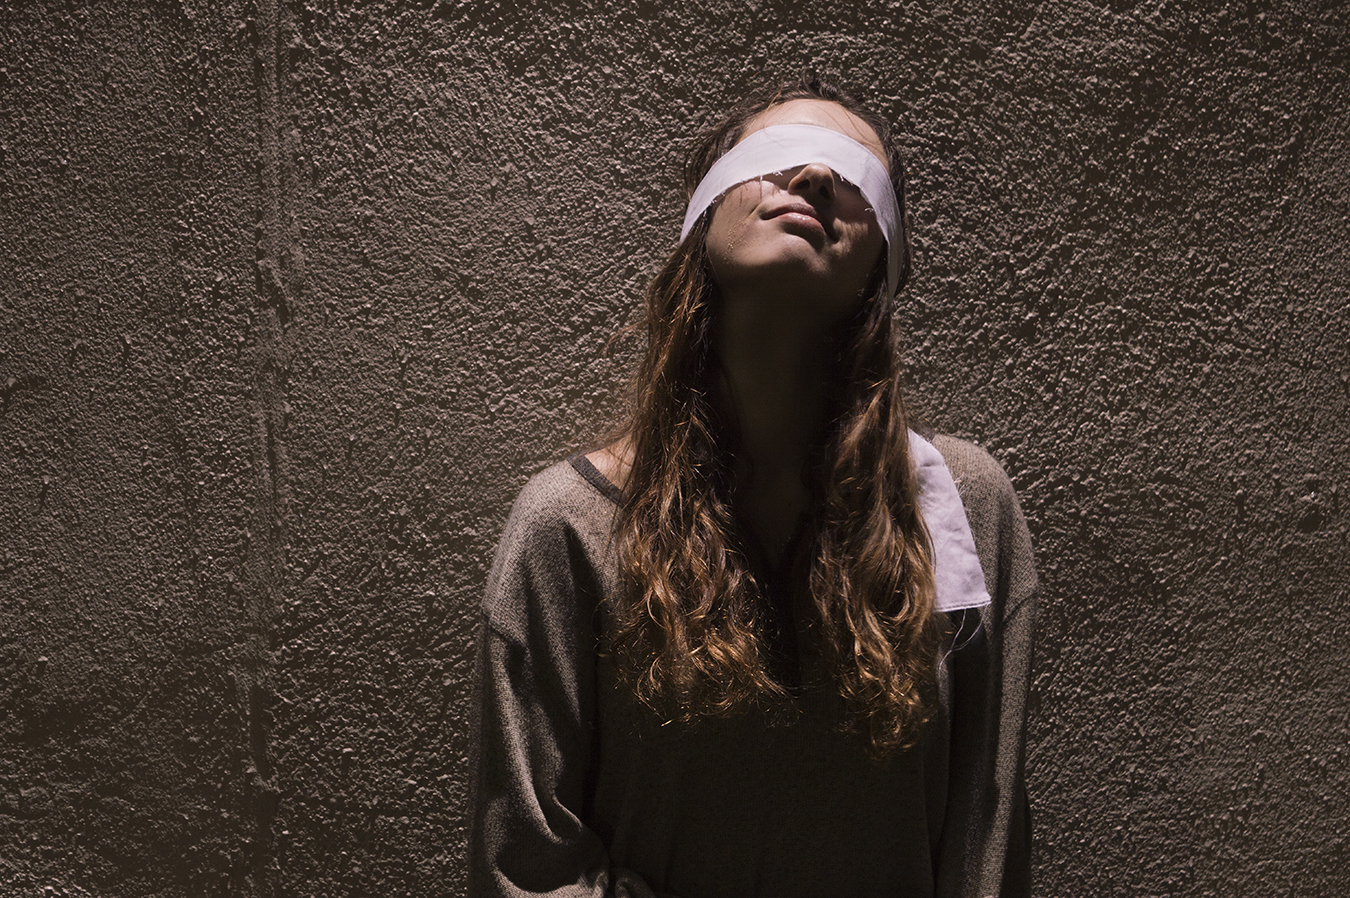 Robin_Sanders_Photography_Wall_Day1_Blindfold_happiness_blindfolded_woman